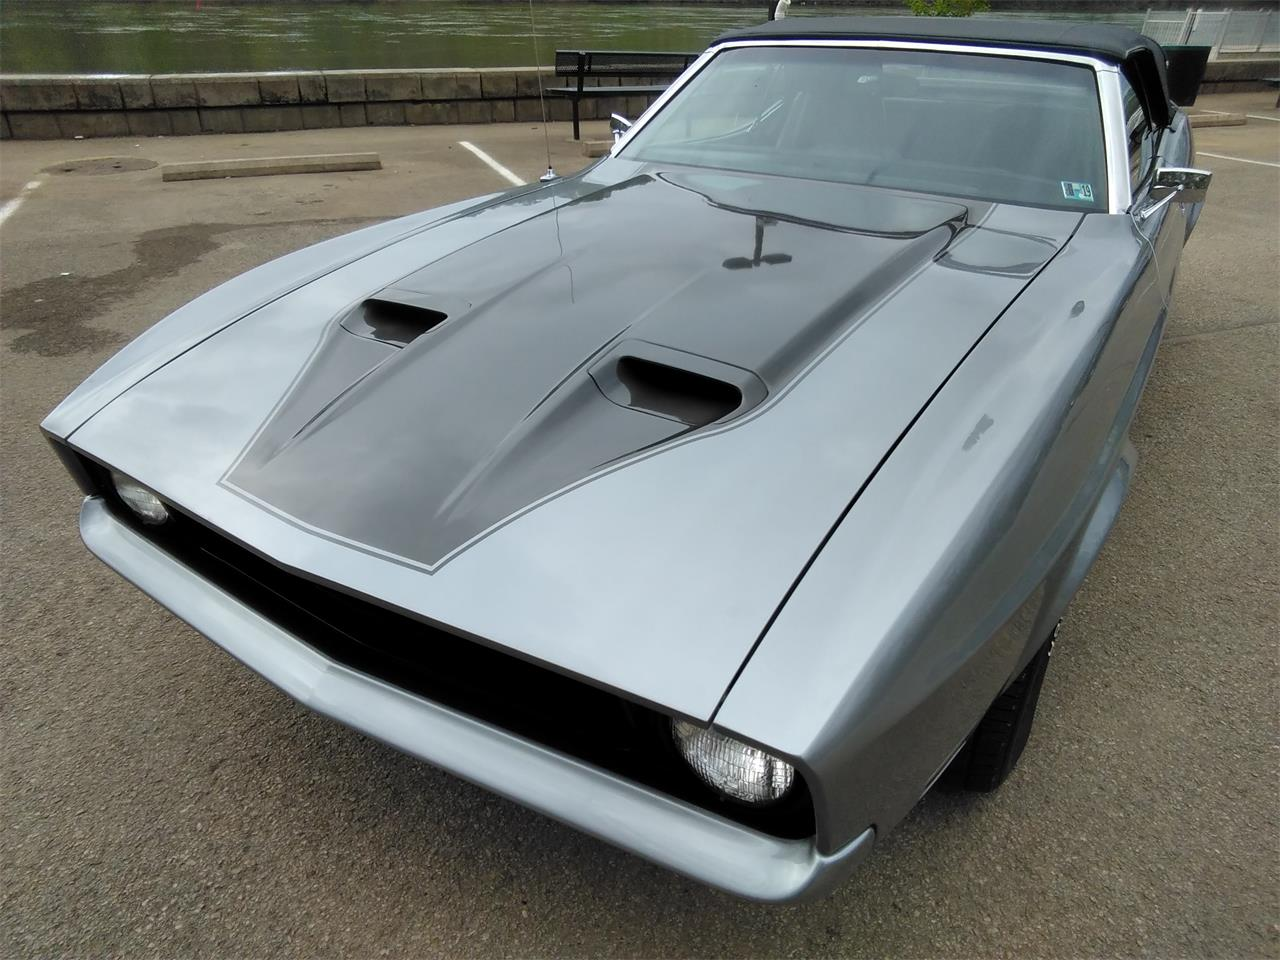 Large Picture of 1971 Ford Mustang located in Pittsburgh Pennsylvania - $24,950.00 - Q0IM